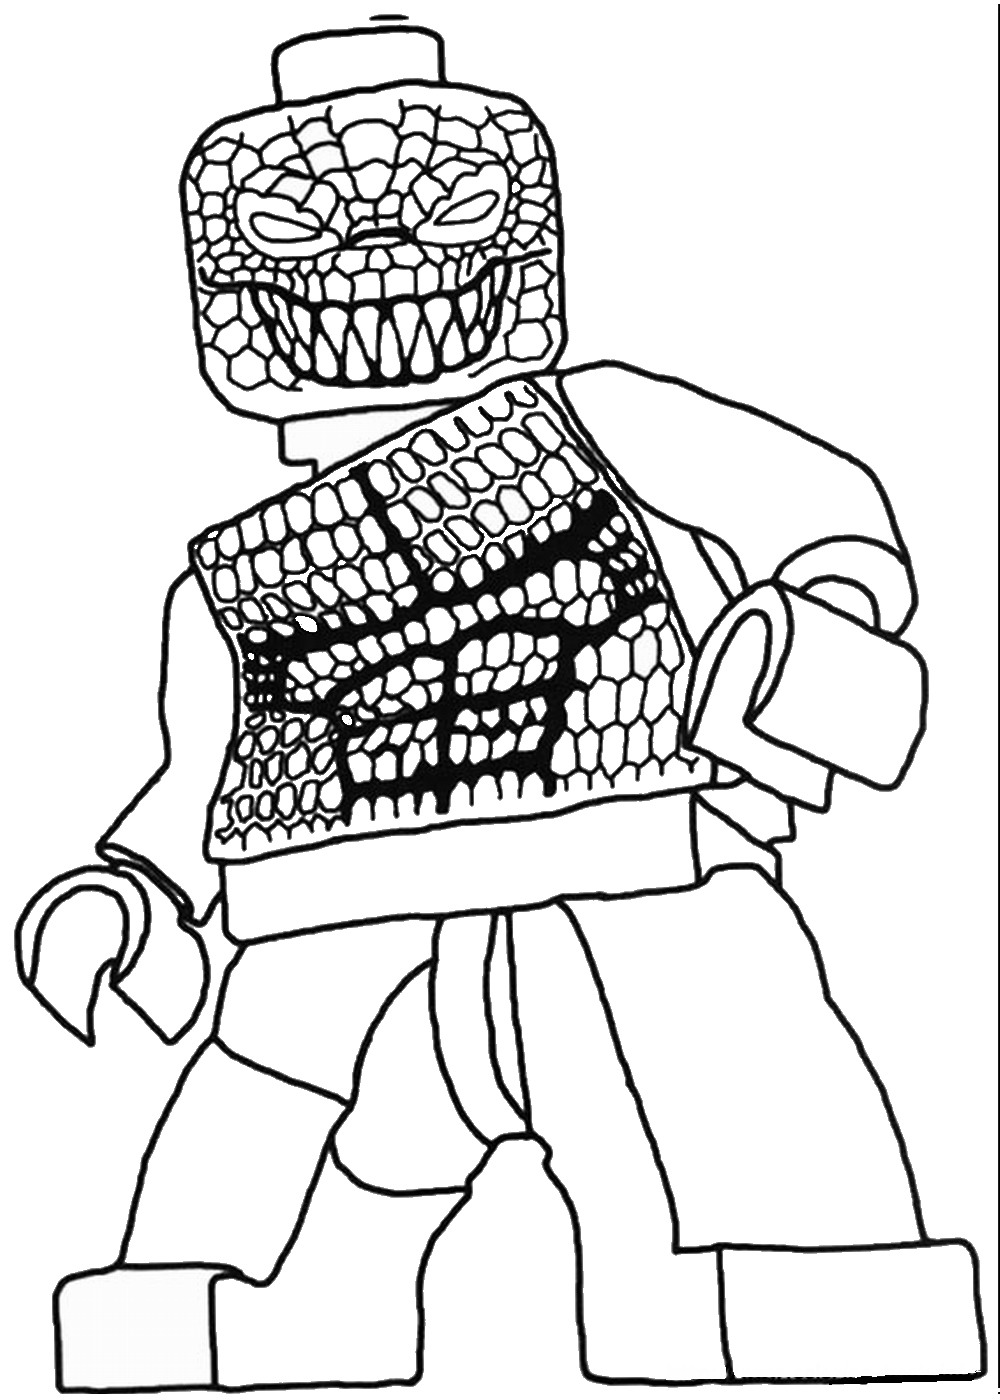 batman lego coloring pages printables the lego batman movie coloring pages batman lego coloring printables pages